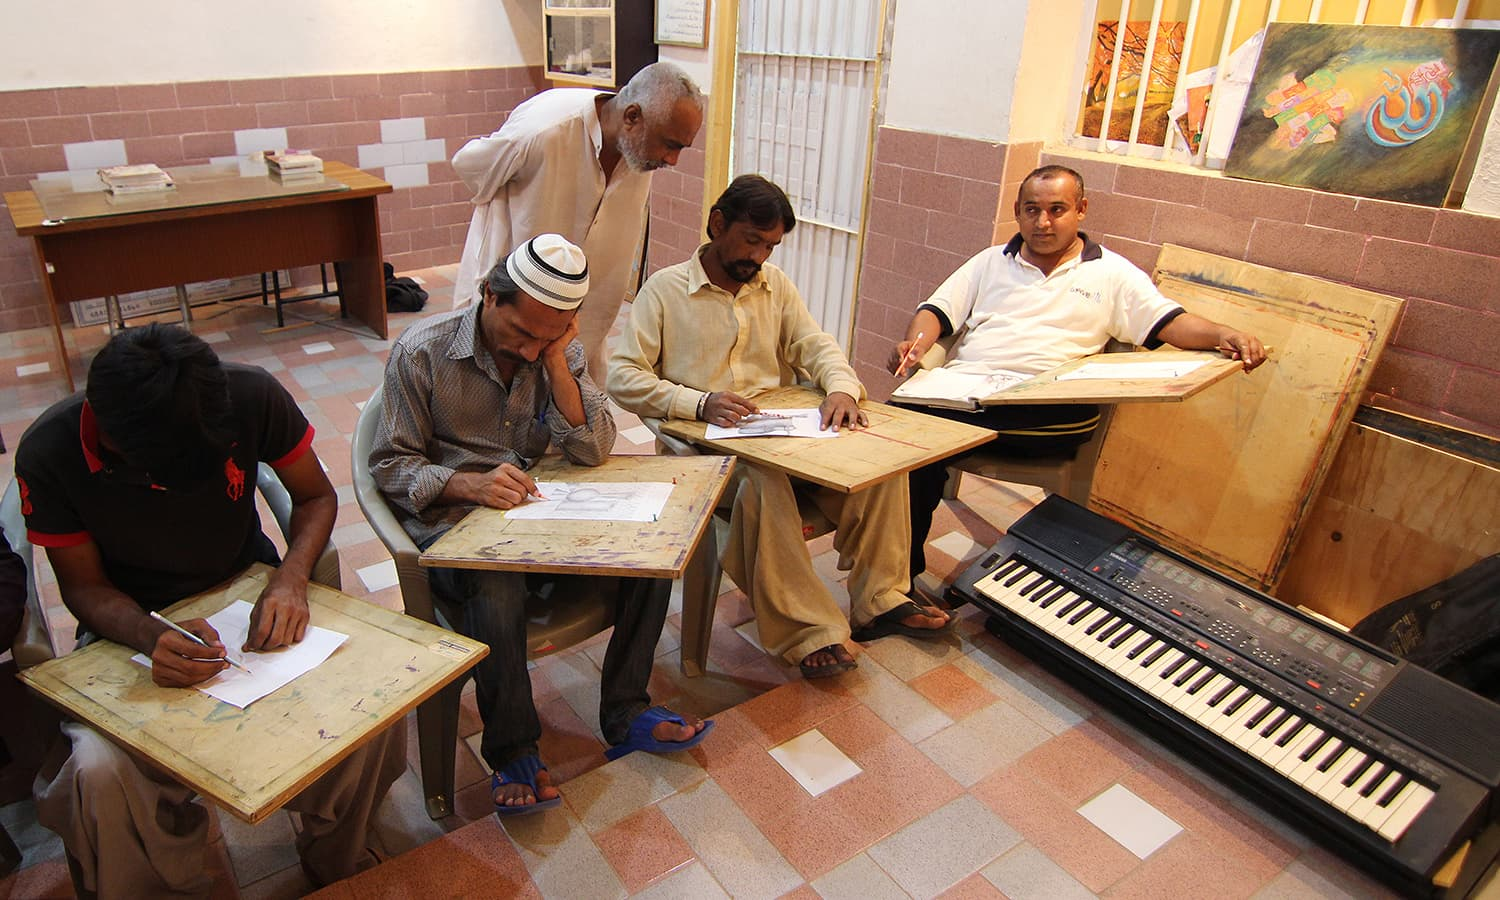 The interior of the school is like an exquisite art gallery where paintings hang on the walls and air conditioners run all the time. Kazim, who has been studying at the school for the past eight years, is seen guiding a student about his sketch work.